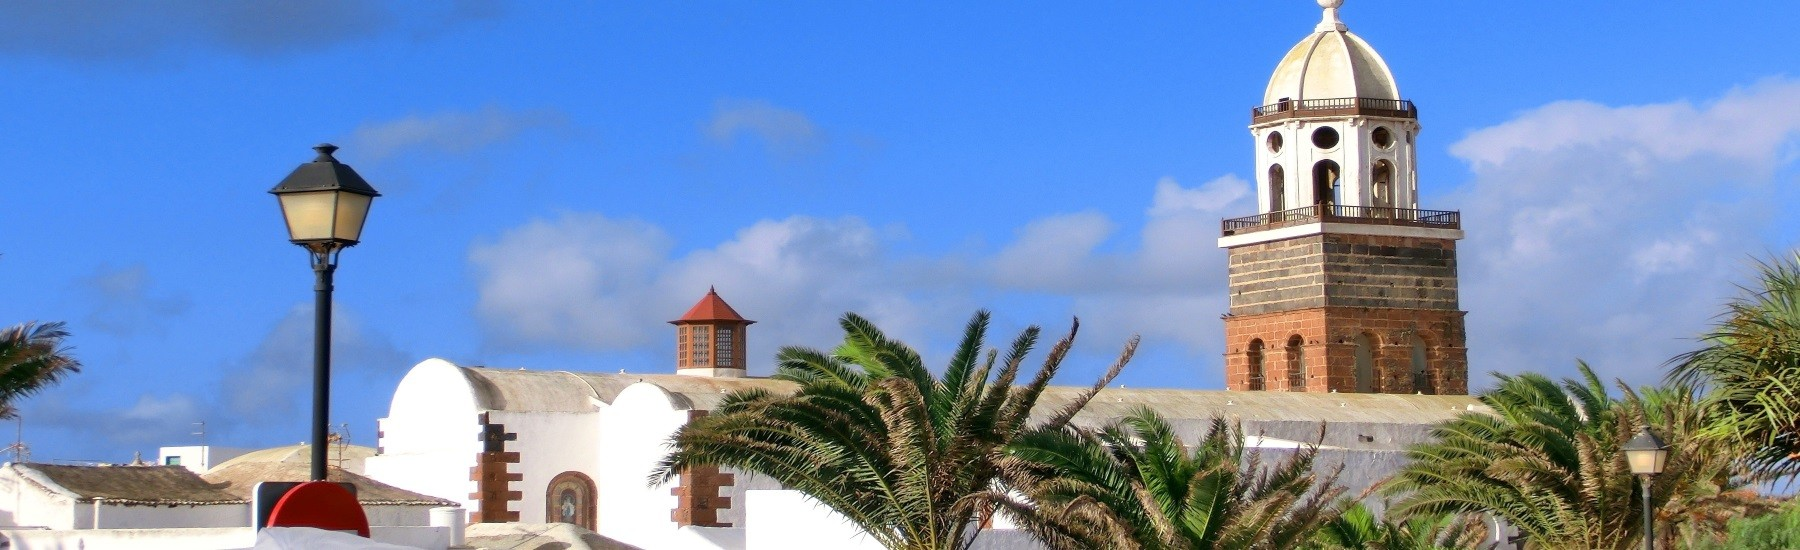 Sightseeing in Lanzarote Kathedrale